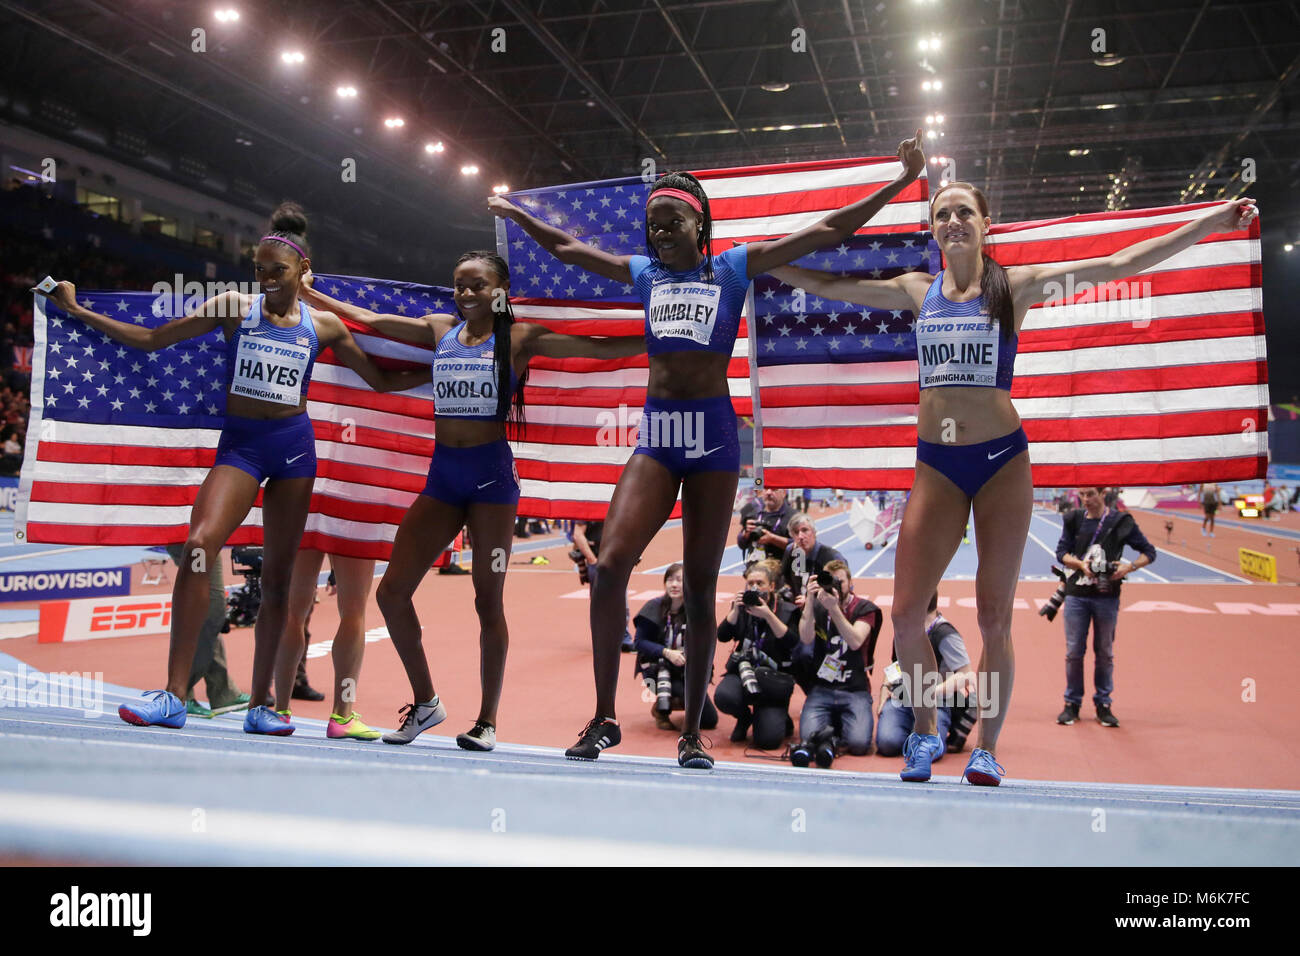 Birmingham, Courtney Okolo and Quanera Hayes celebrate after winning the women's 4x400m relay final during the - Stock Image